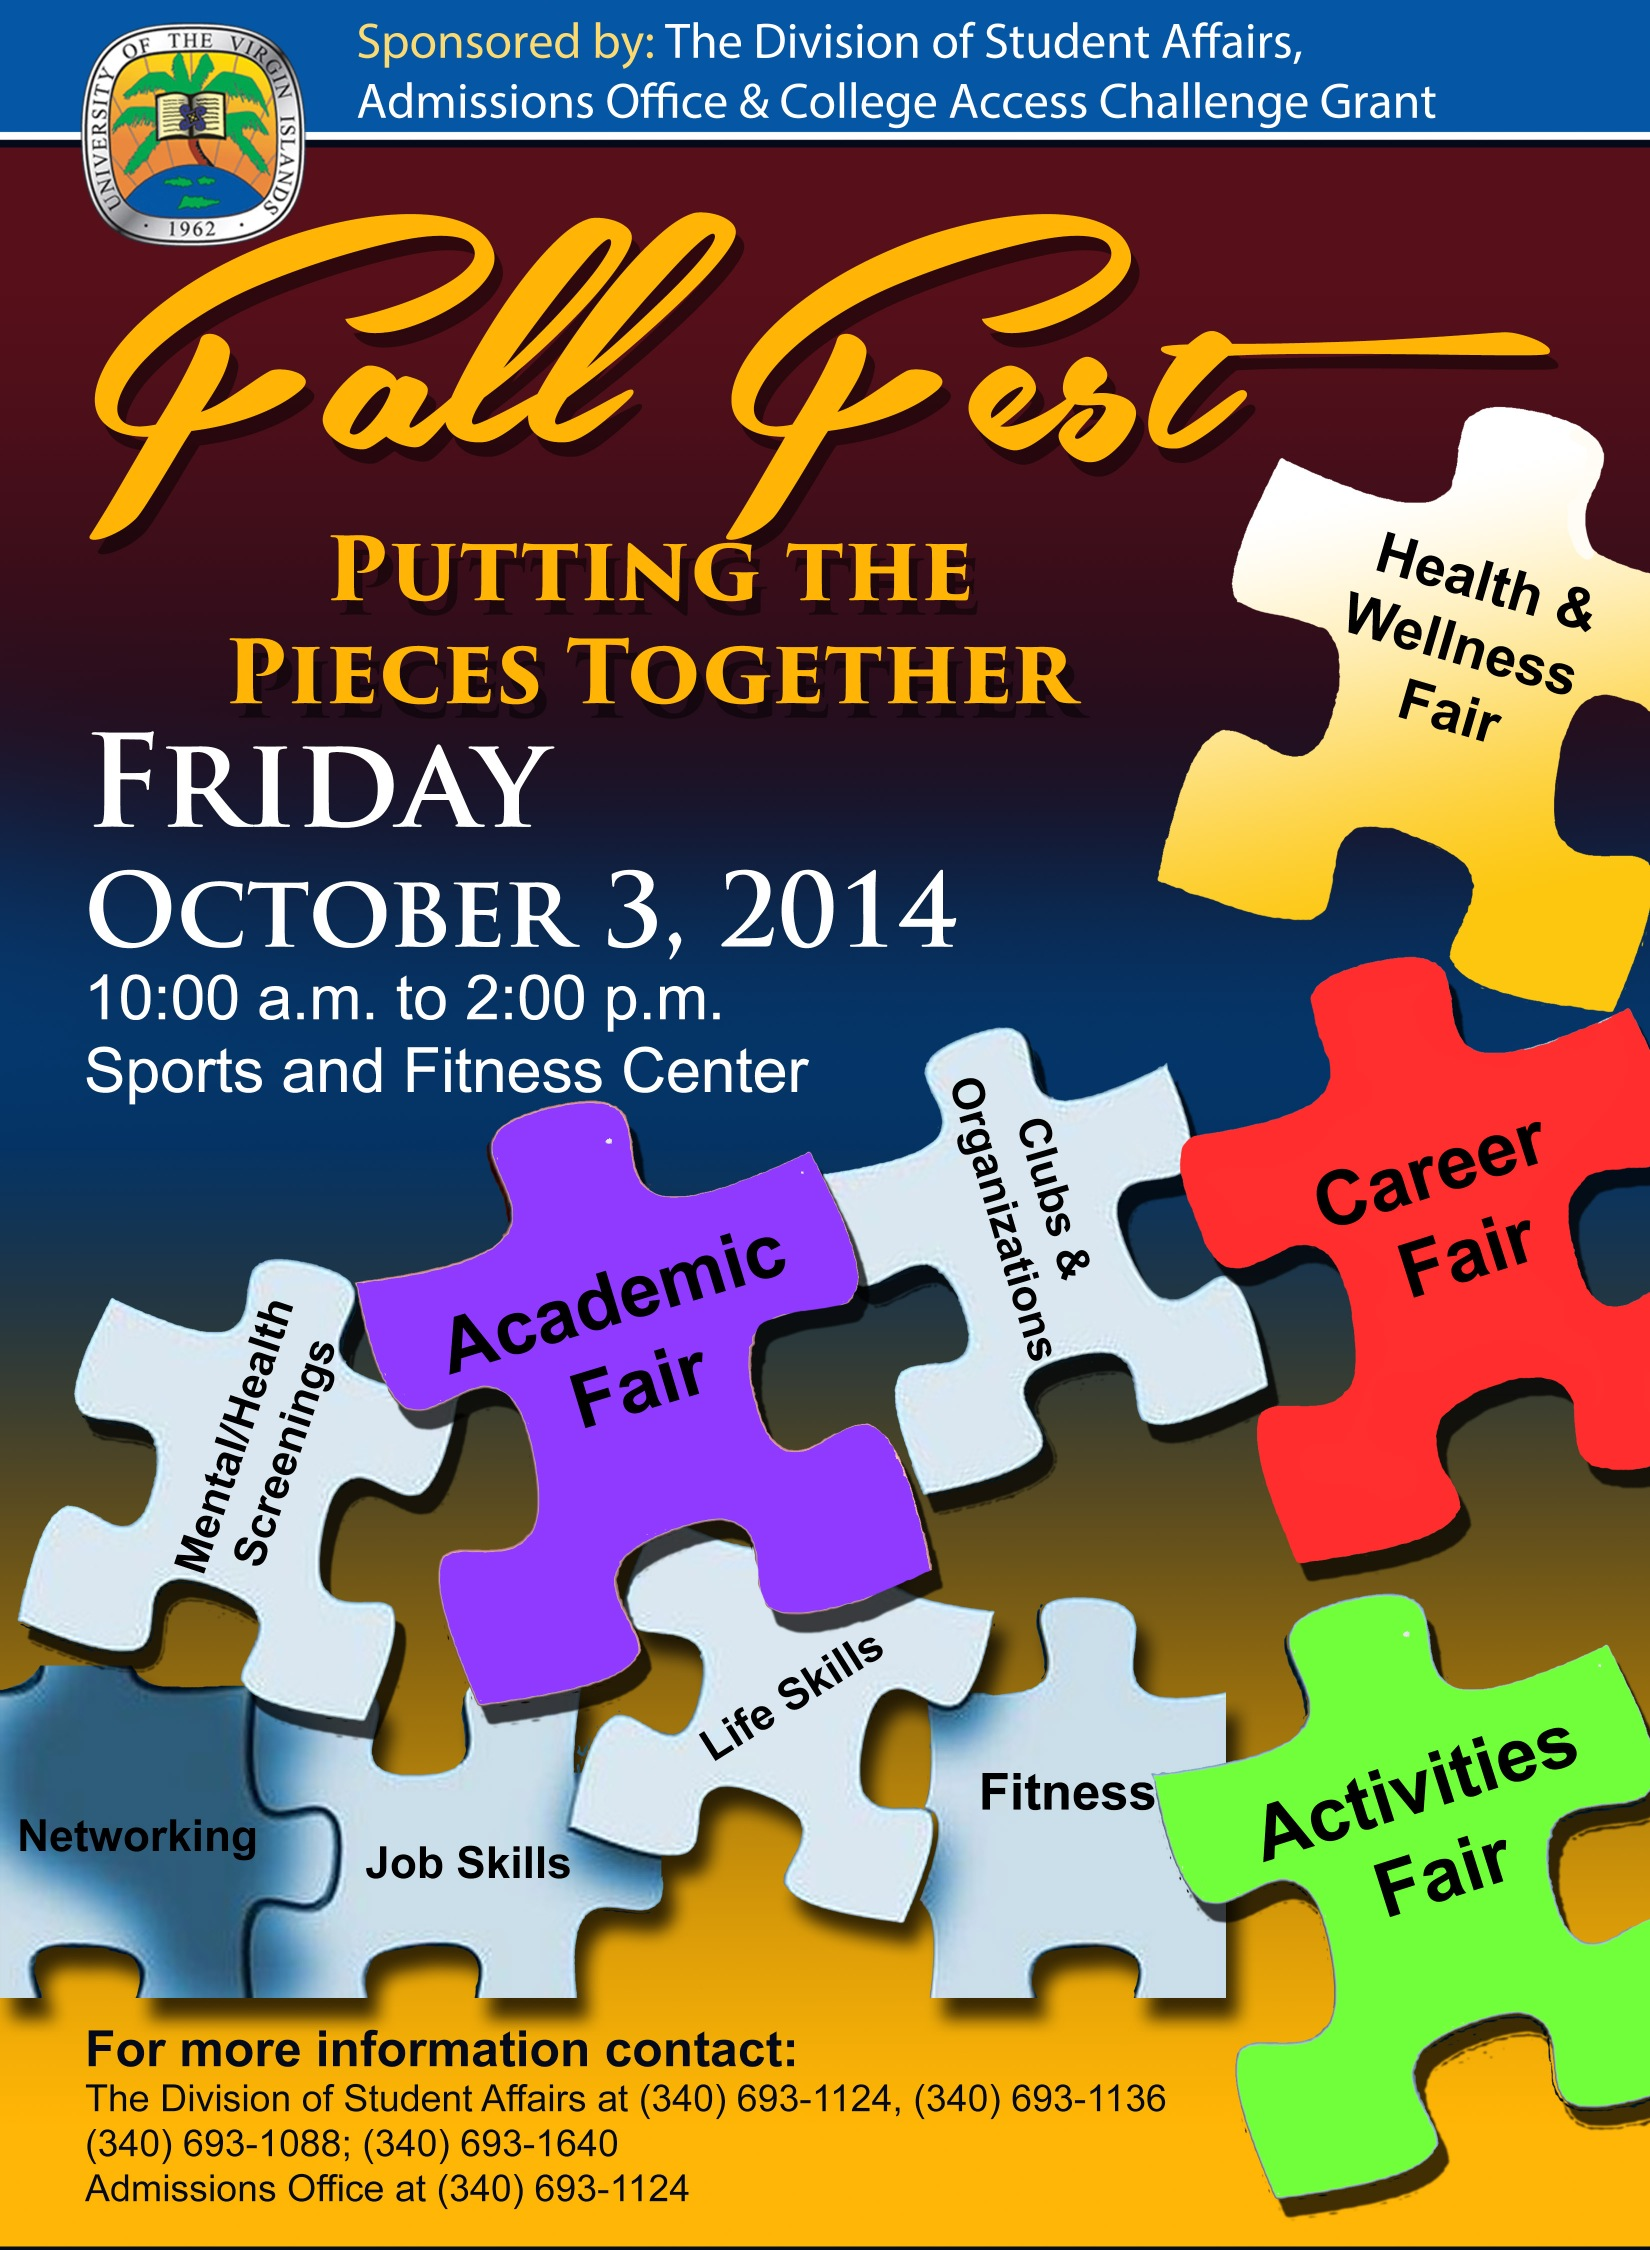 Fall Fest is set to take place on October 3, 2014